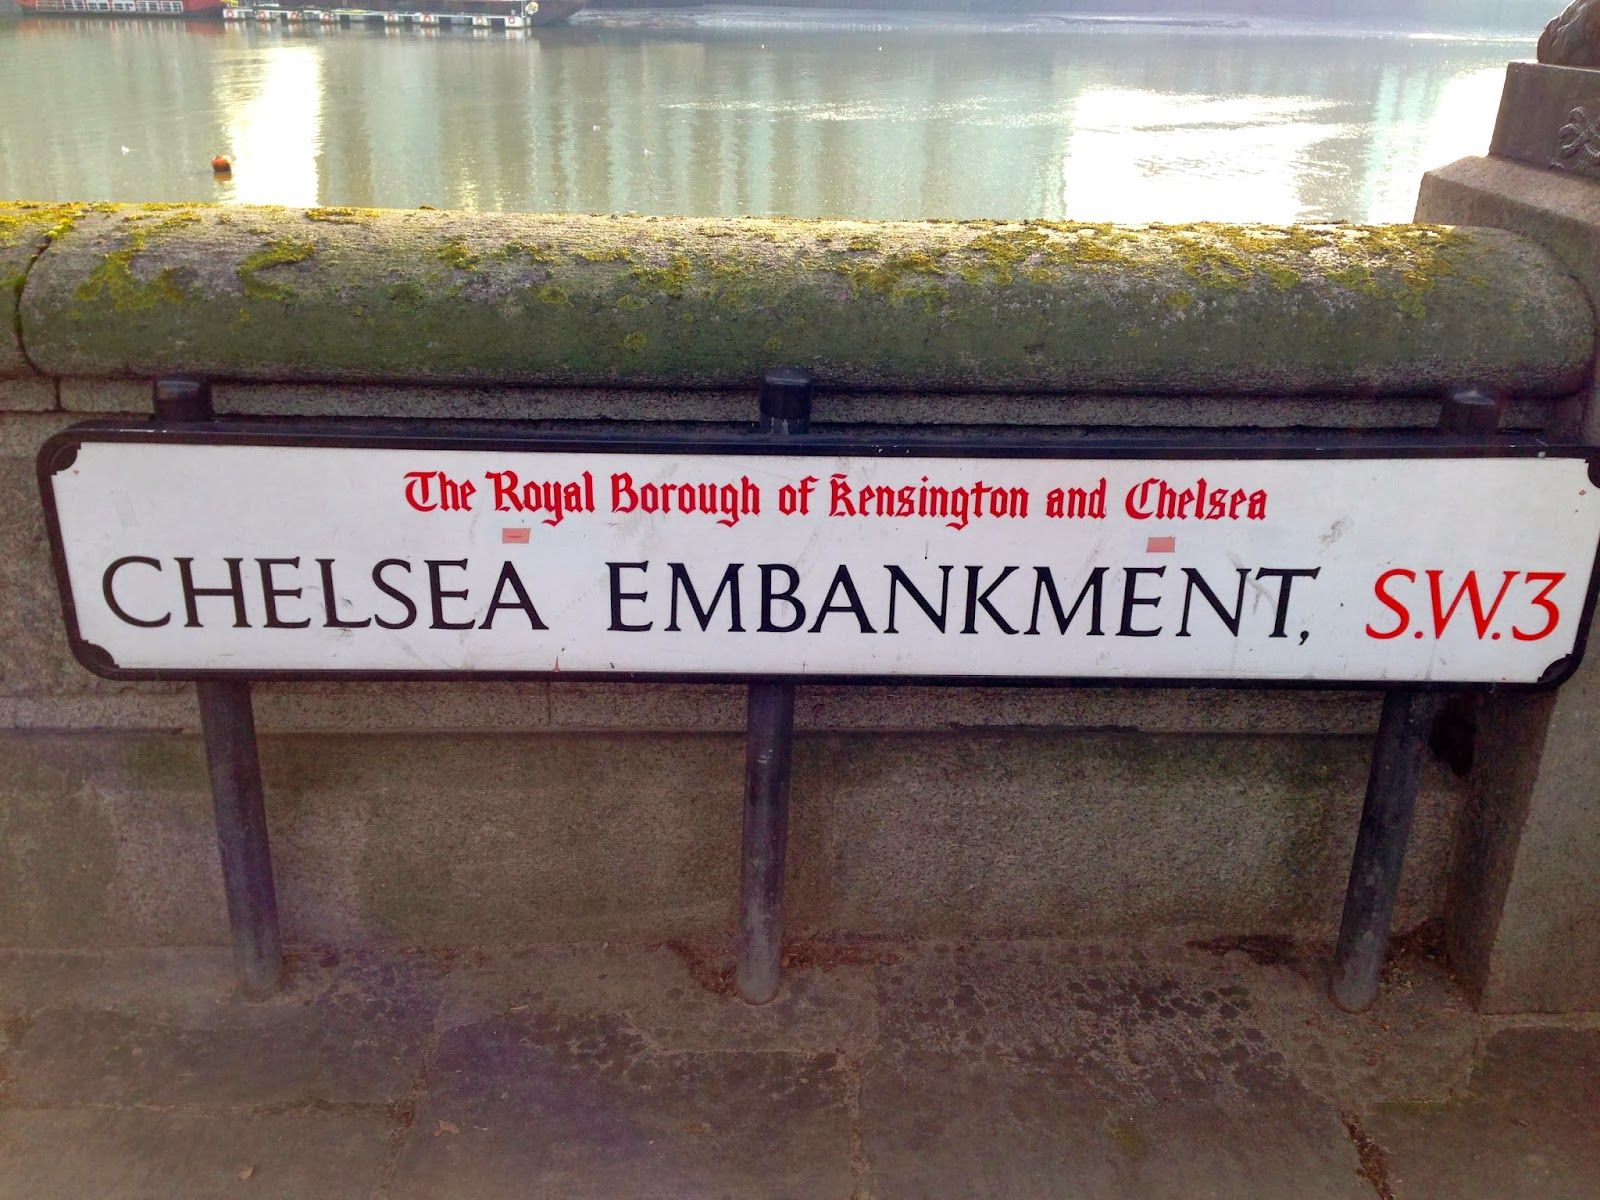 Lovely Travels: A personal travel blog : Yes...another post of Chelsea #london #england #studyabroad #travel #vacation #chelsea #chelseaembankment #kensington #royalborough